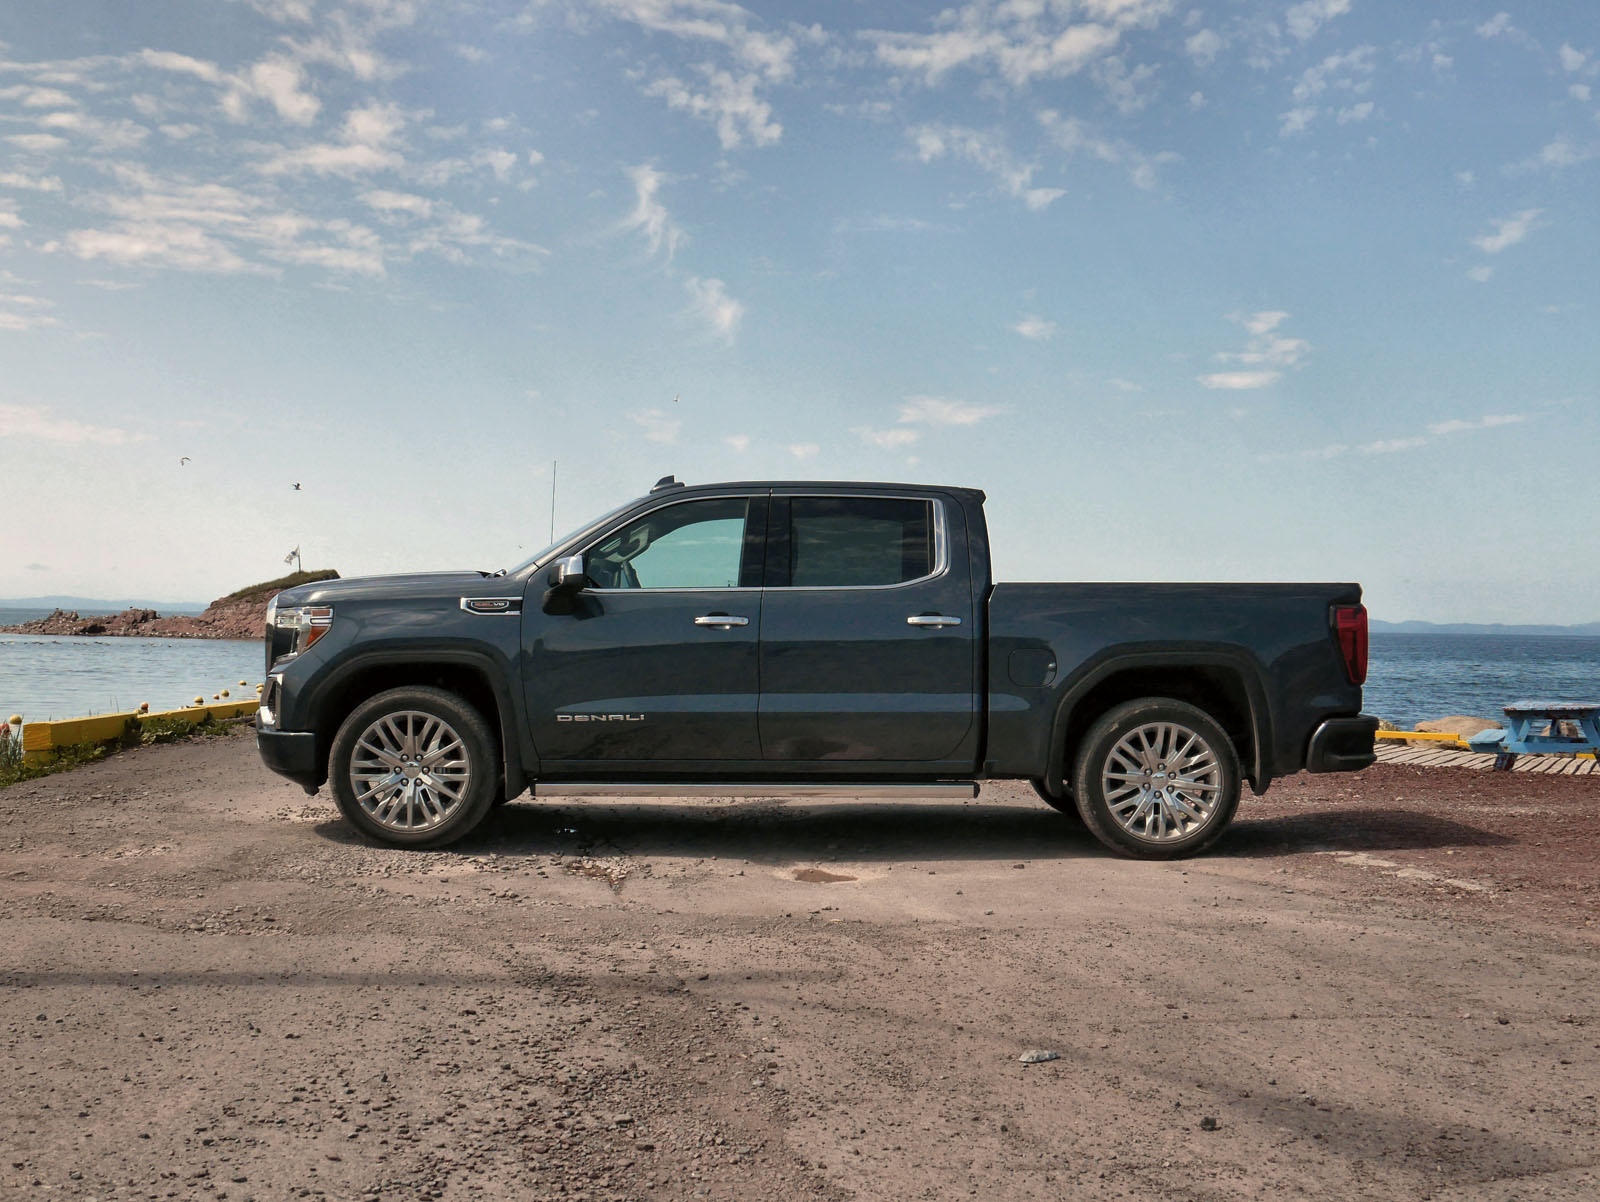 2019 GMC Sierra Configurator Goes Live: Build Your Next Truck - GM Inside News